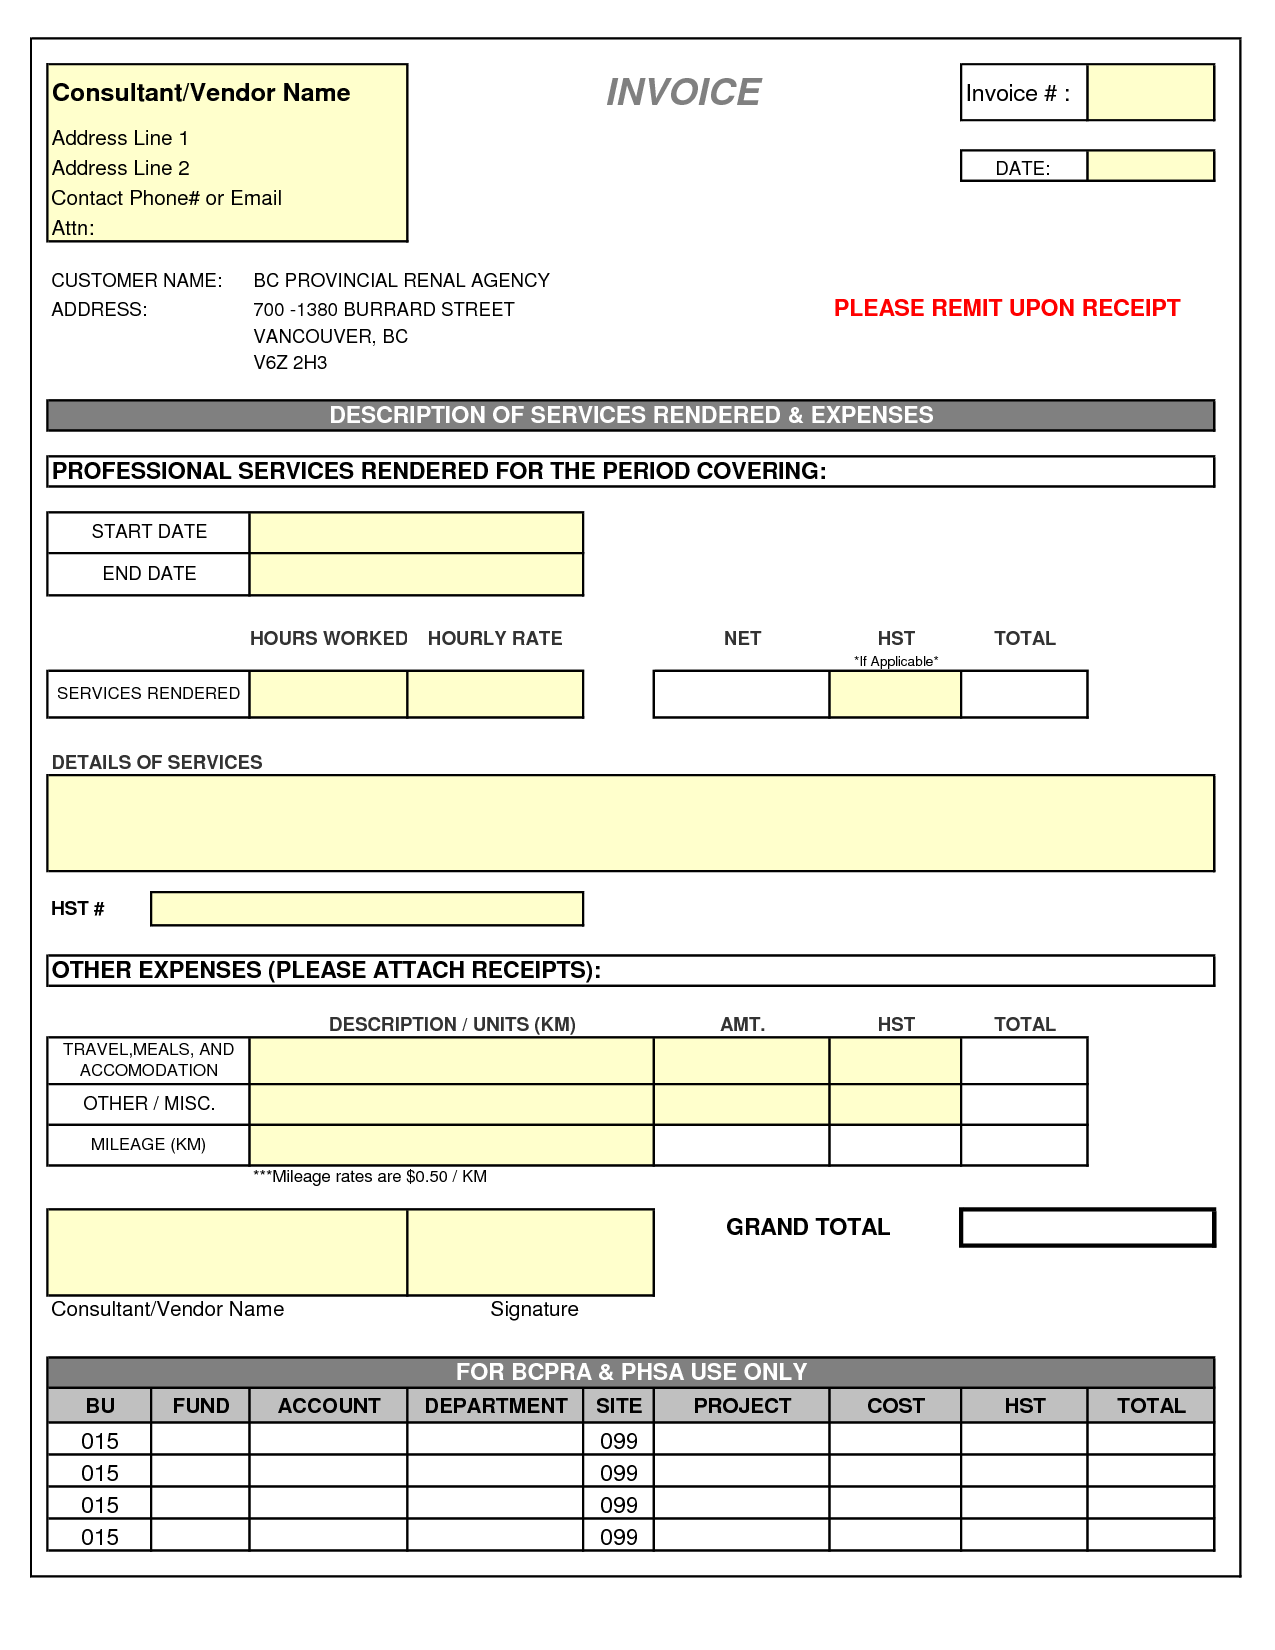 Billing Invoice Template Pdf and Retainer Invoice Sample Rabitah